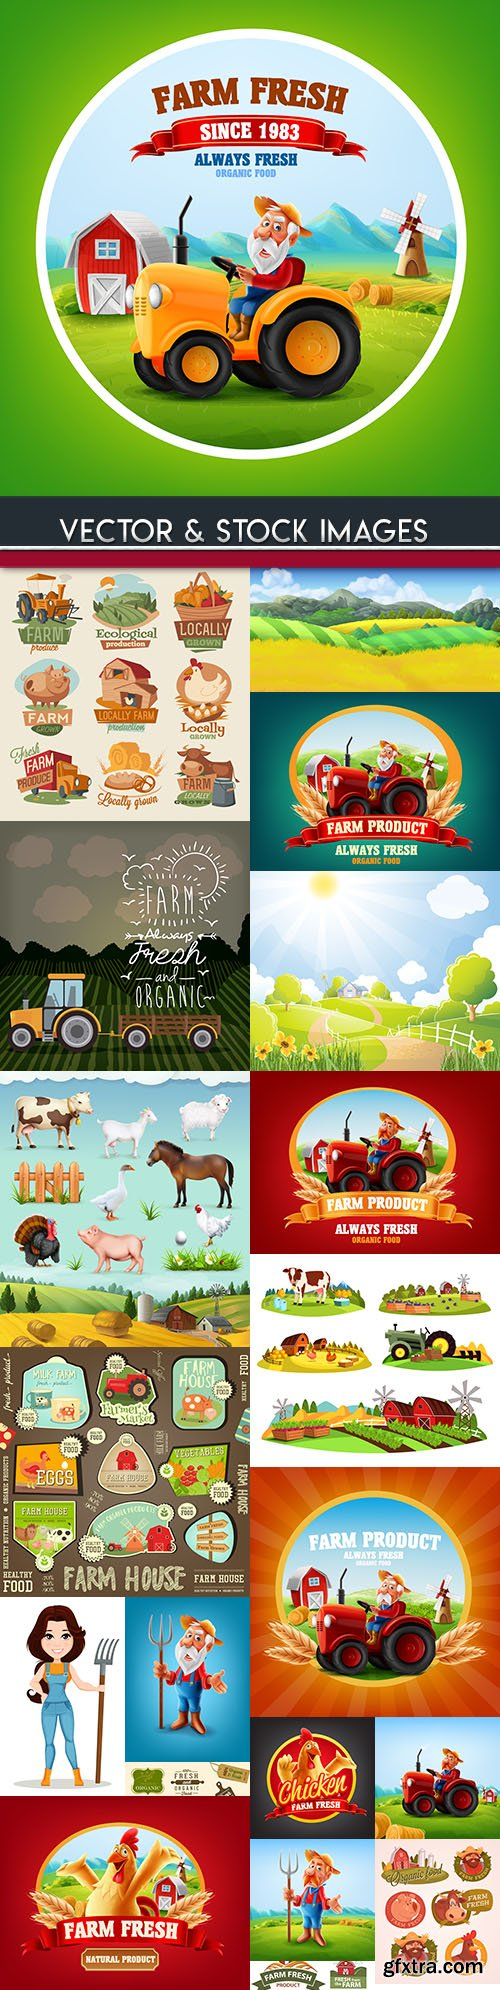 Farm natural products and farmer on tractor collection